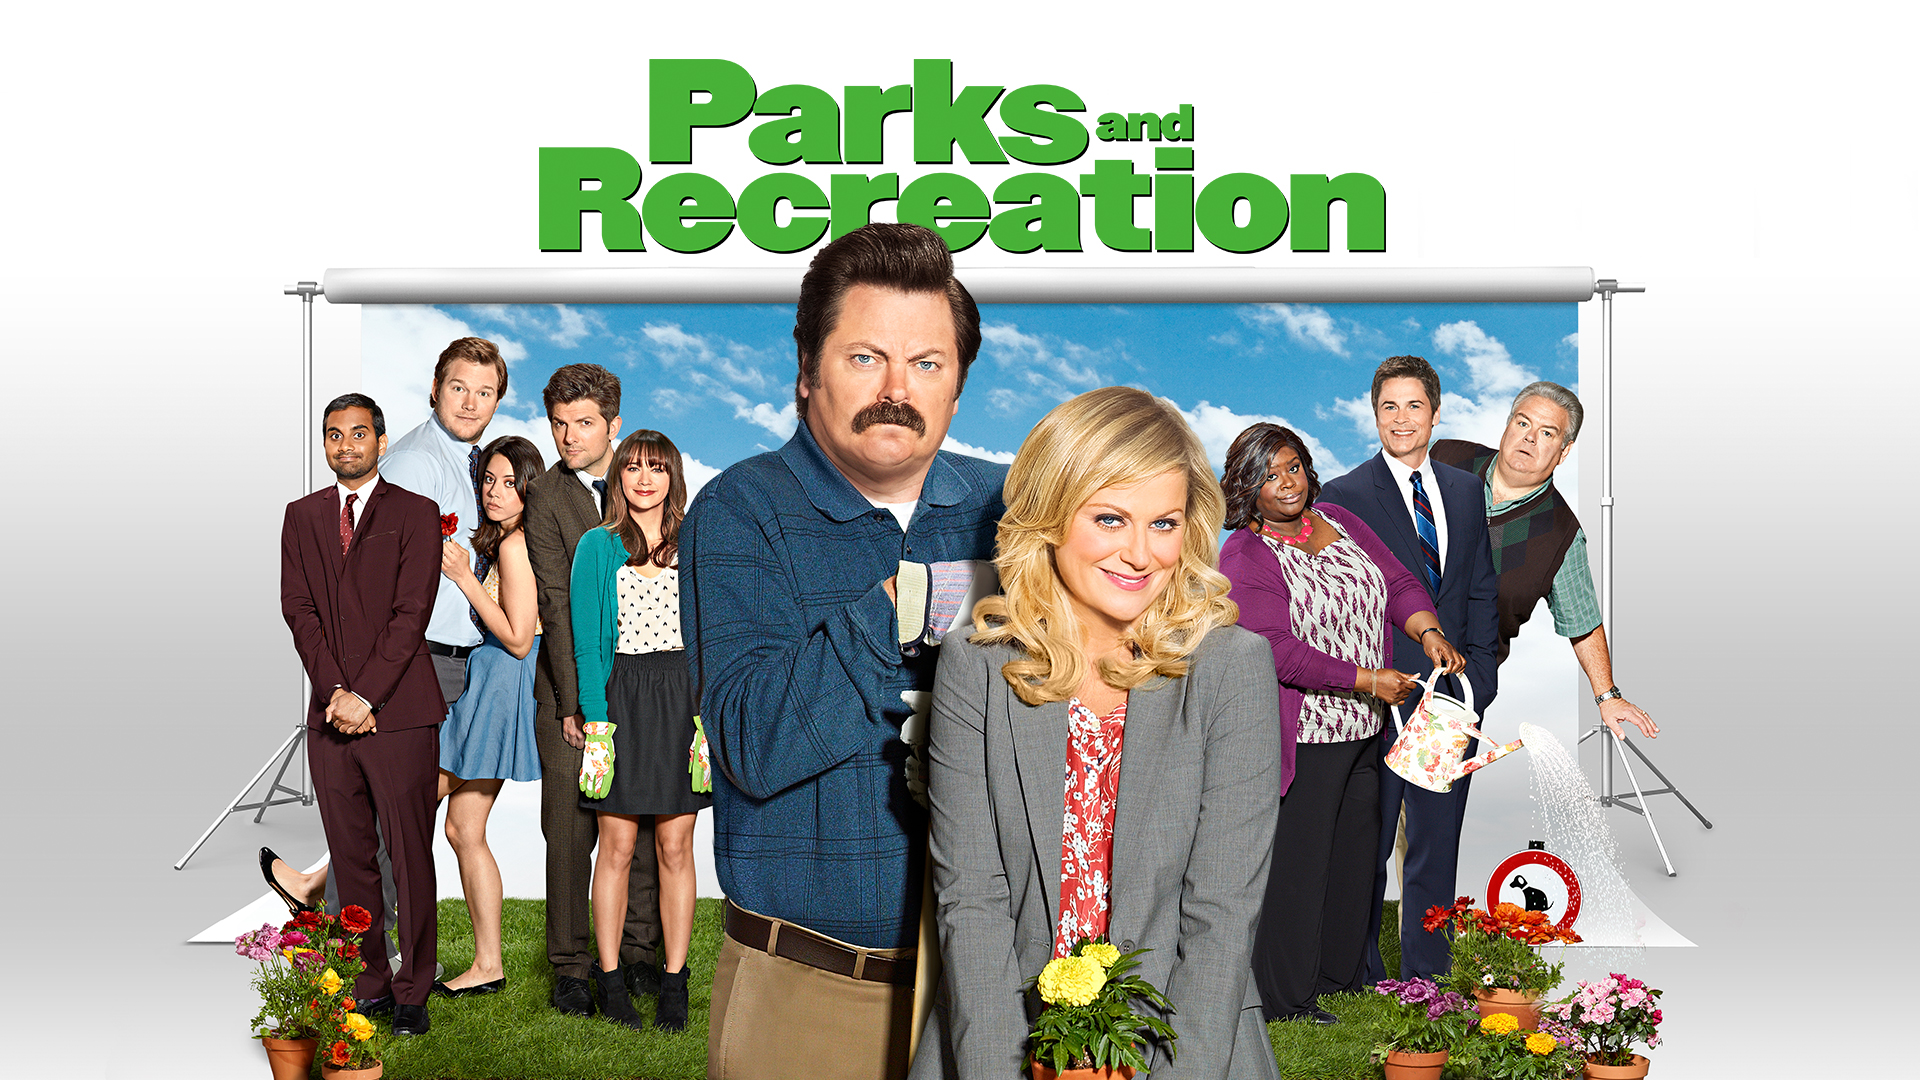 http://www.nbc.com/sites/nbcunbc/files/files/2013_0808_Parks_and_Rec_Show_KeyArt_1920x1080_0.jpg?vm=r